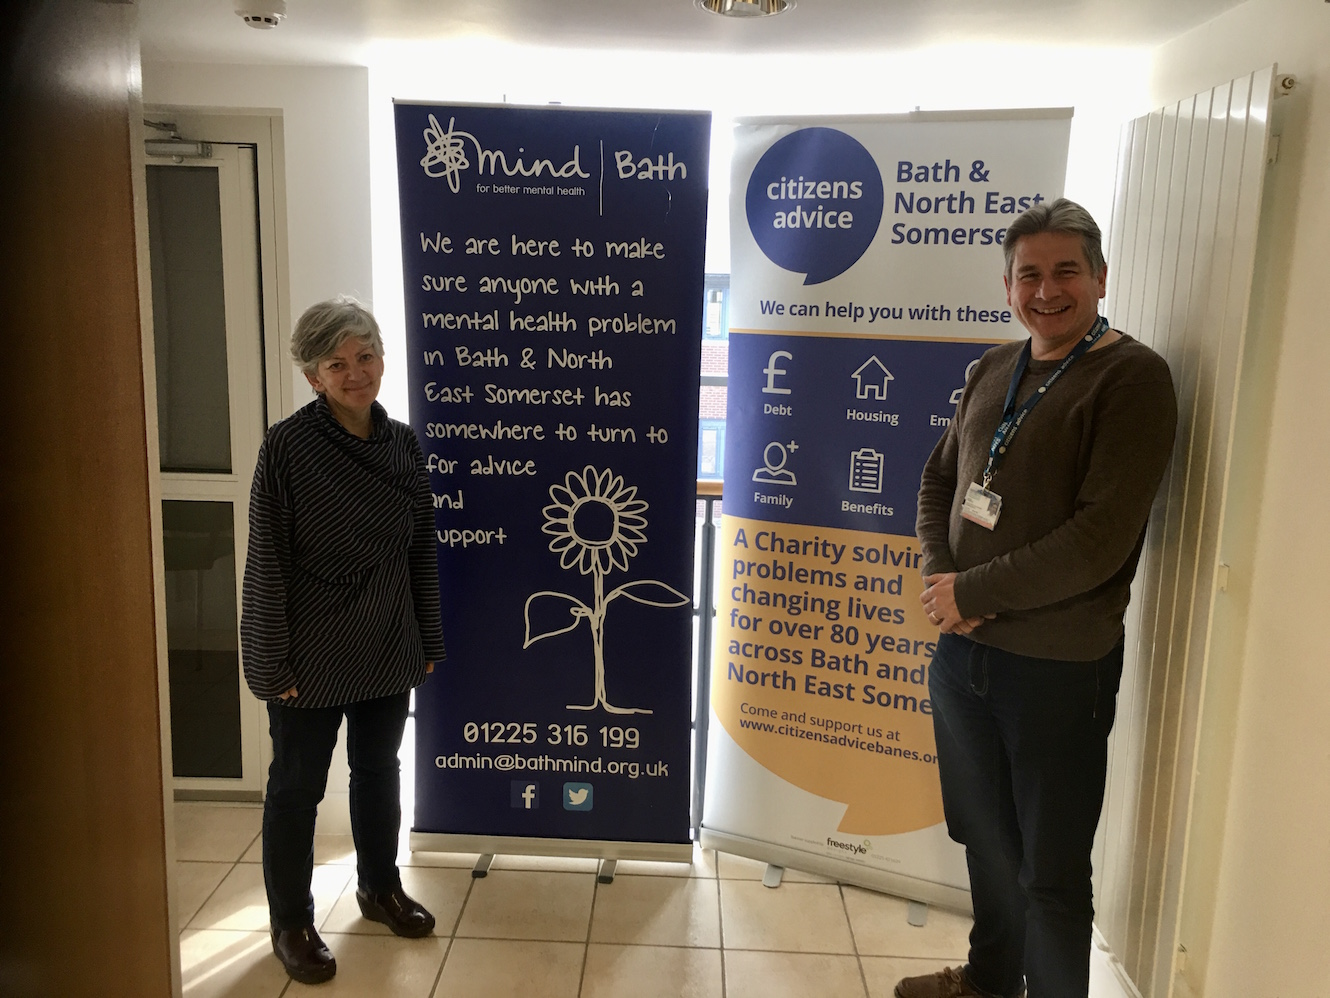 Kate Morton (Bath Mind) and Les Redwood (Citizens Advice - B&NES) are encouraged by this funding